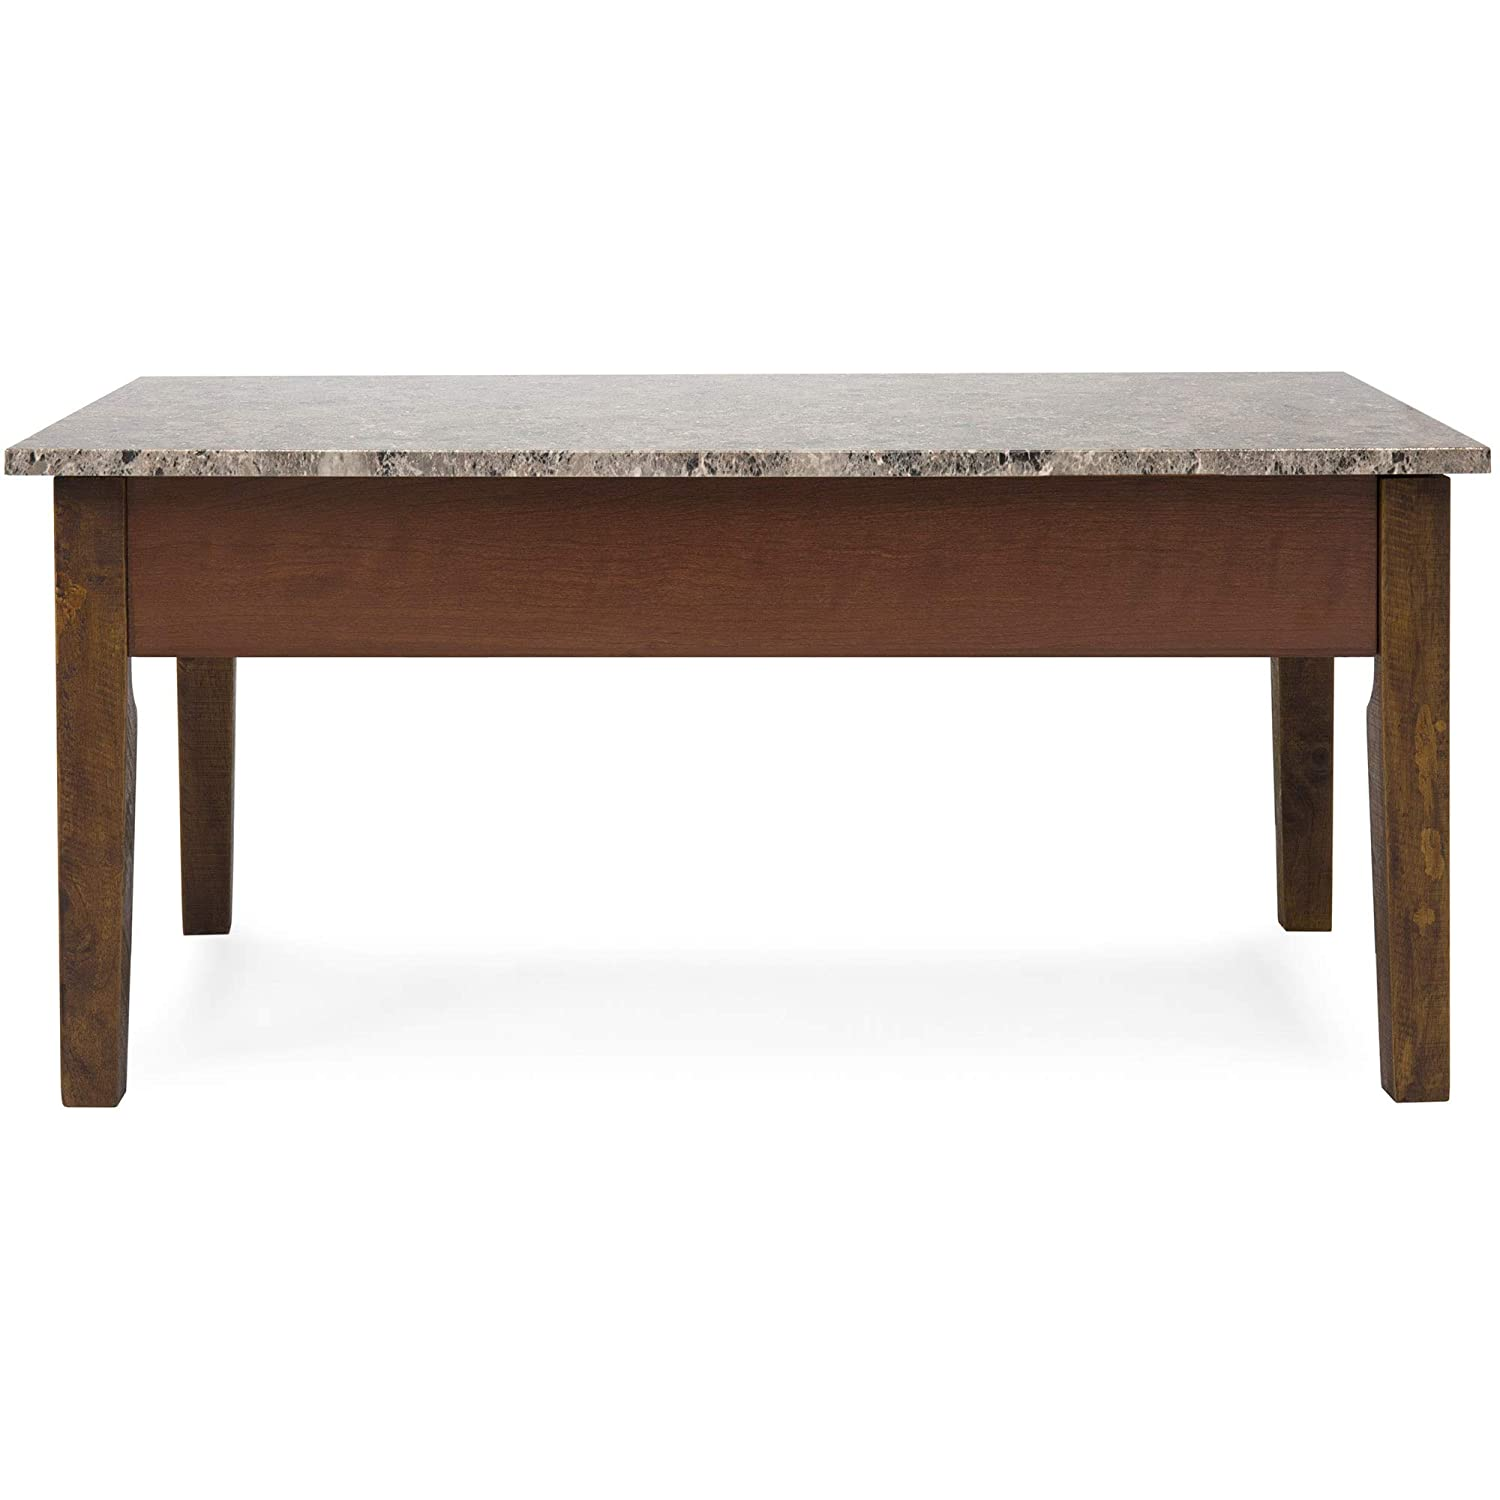 Oak Coffee Table Caring And Maintenance Tips Amazon.com: Best Choice Products Living Room Faux Marble Design Storage  Compartment Space Coffee Table Decor w-Lift Top Mechanism, Wood Veneer  Finish ...